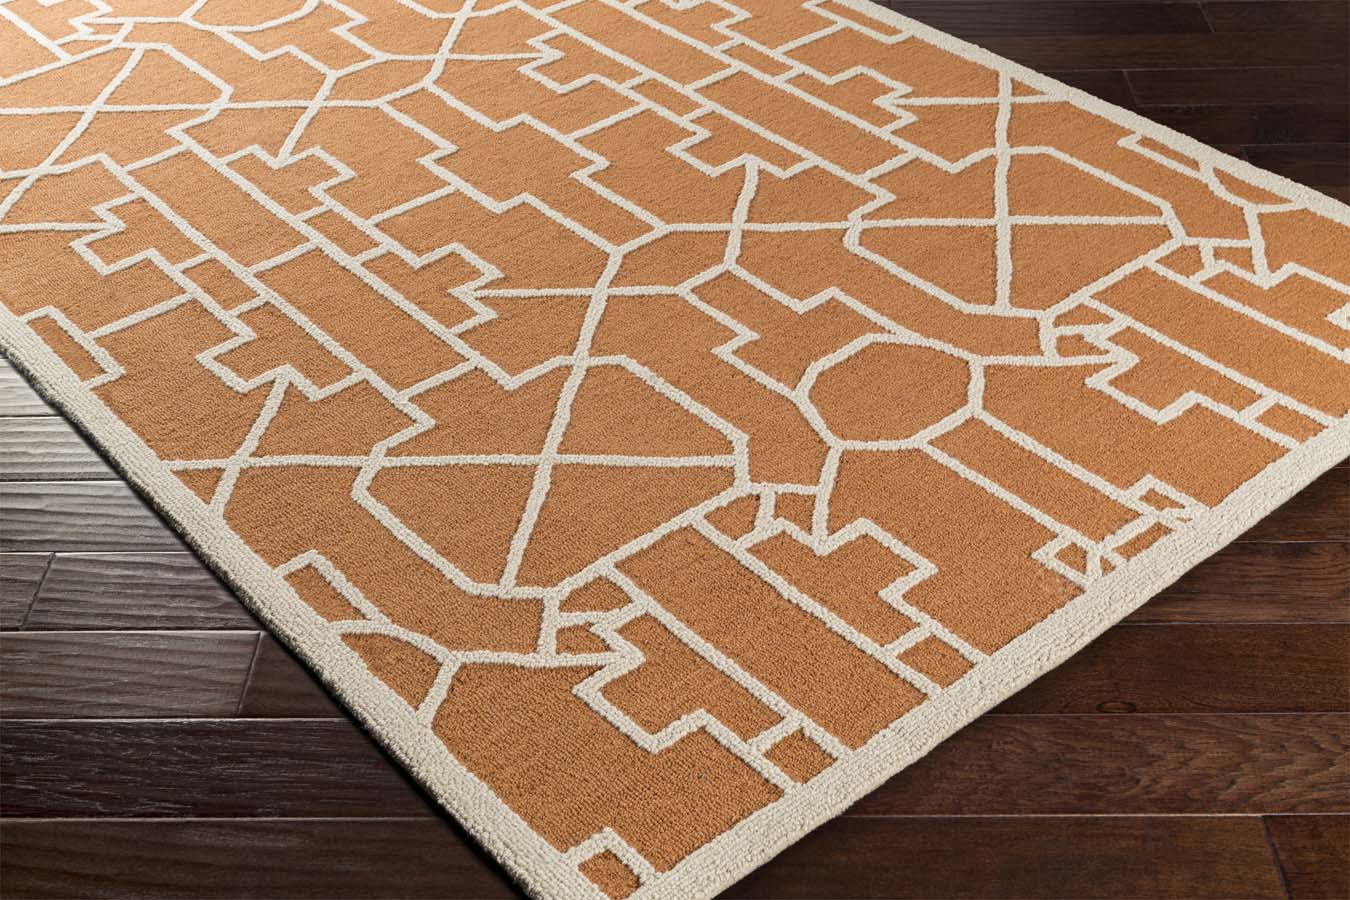 Marigold Collection by Artistic Weavers